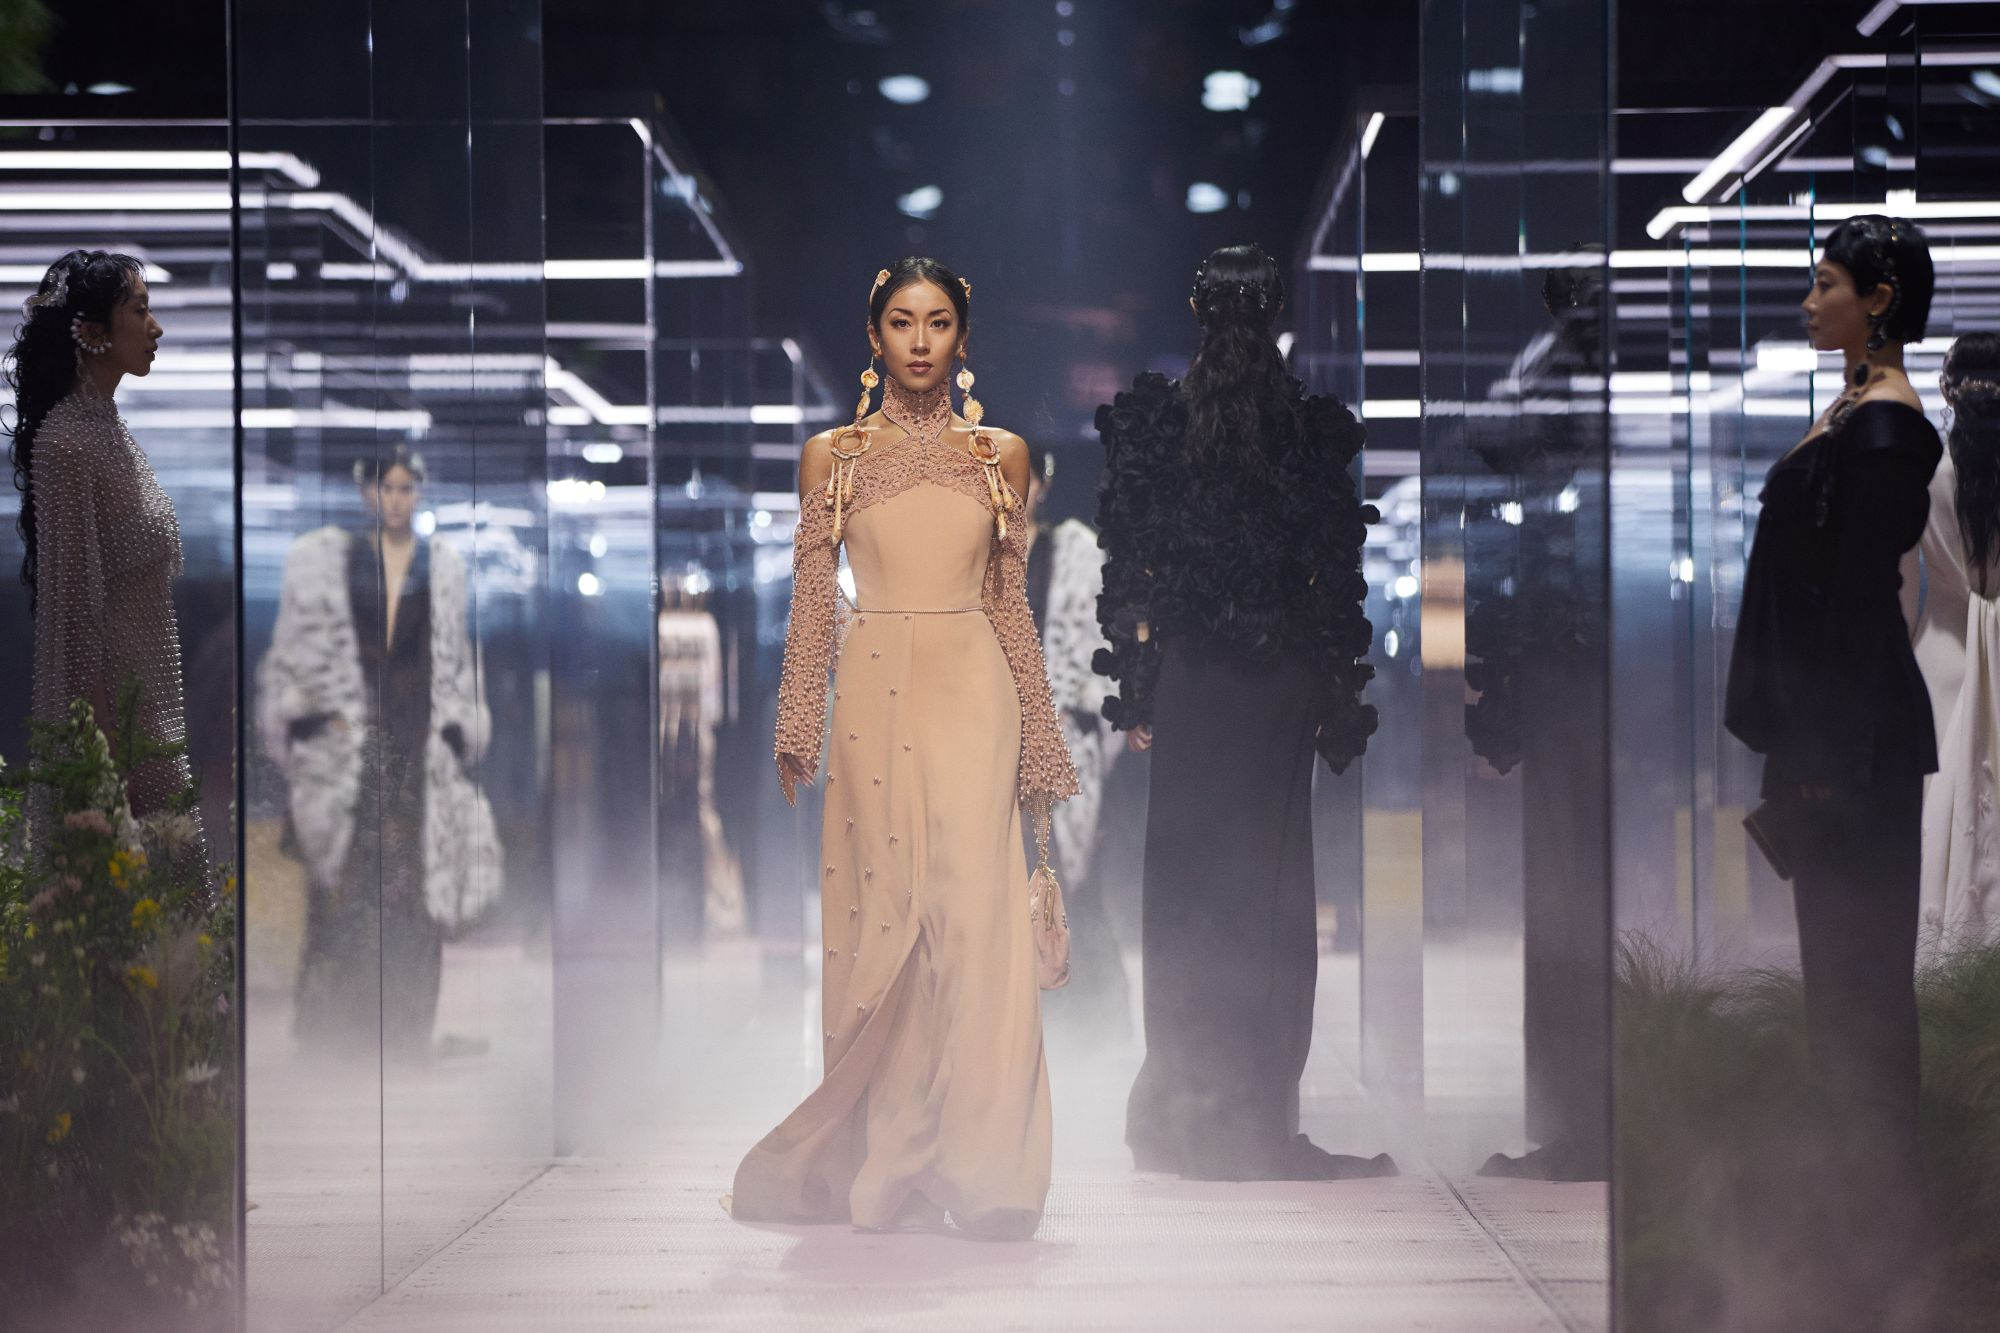 Kim Jones' Fendi Haute Couture Collection In Shanghai Pays Homage To Literature And Creativity